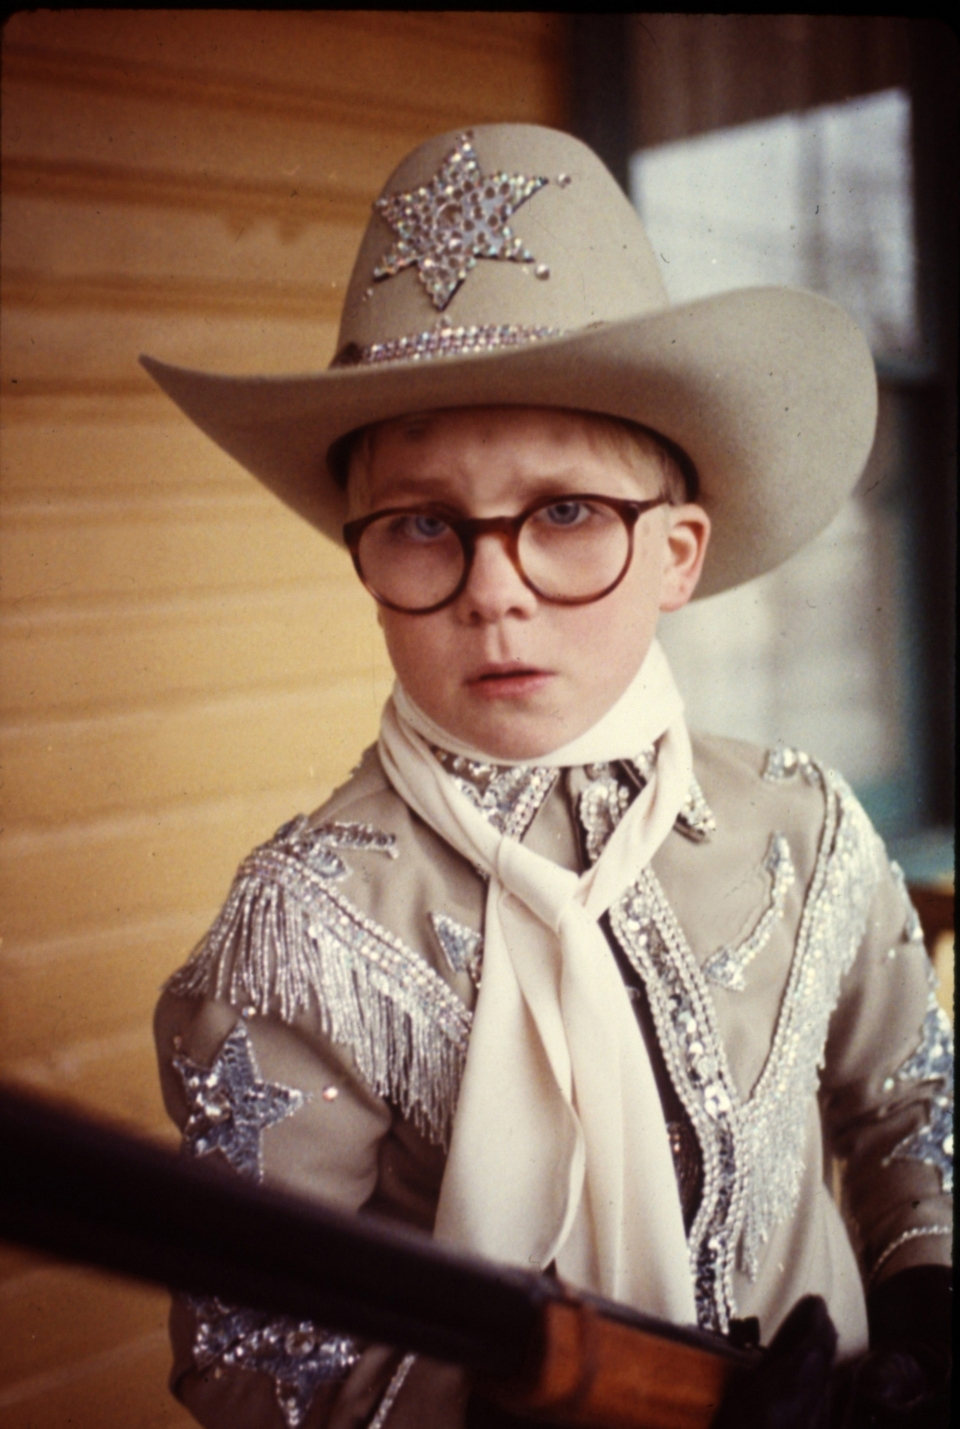 A Christmas Story - I want an official Red Ryder, carbine action ...